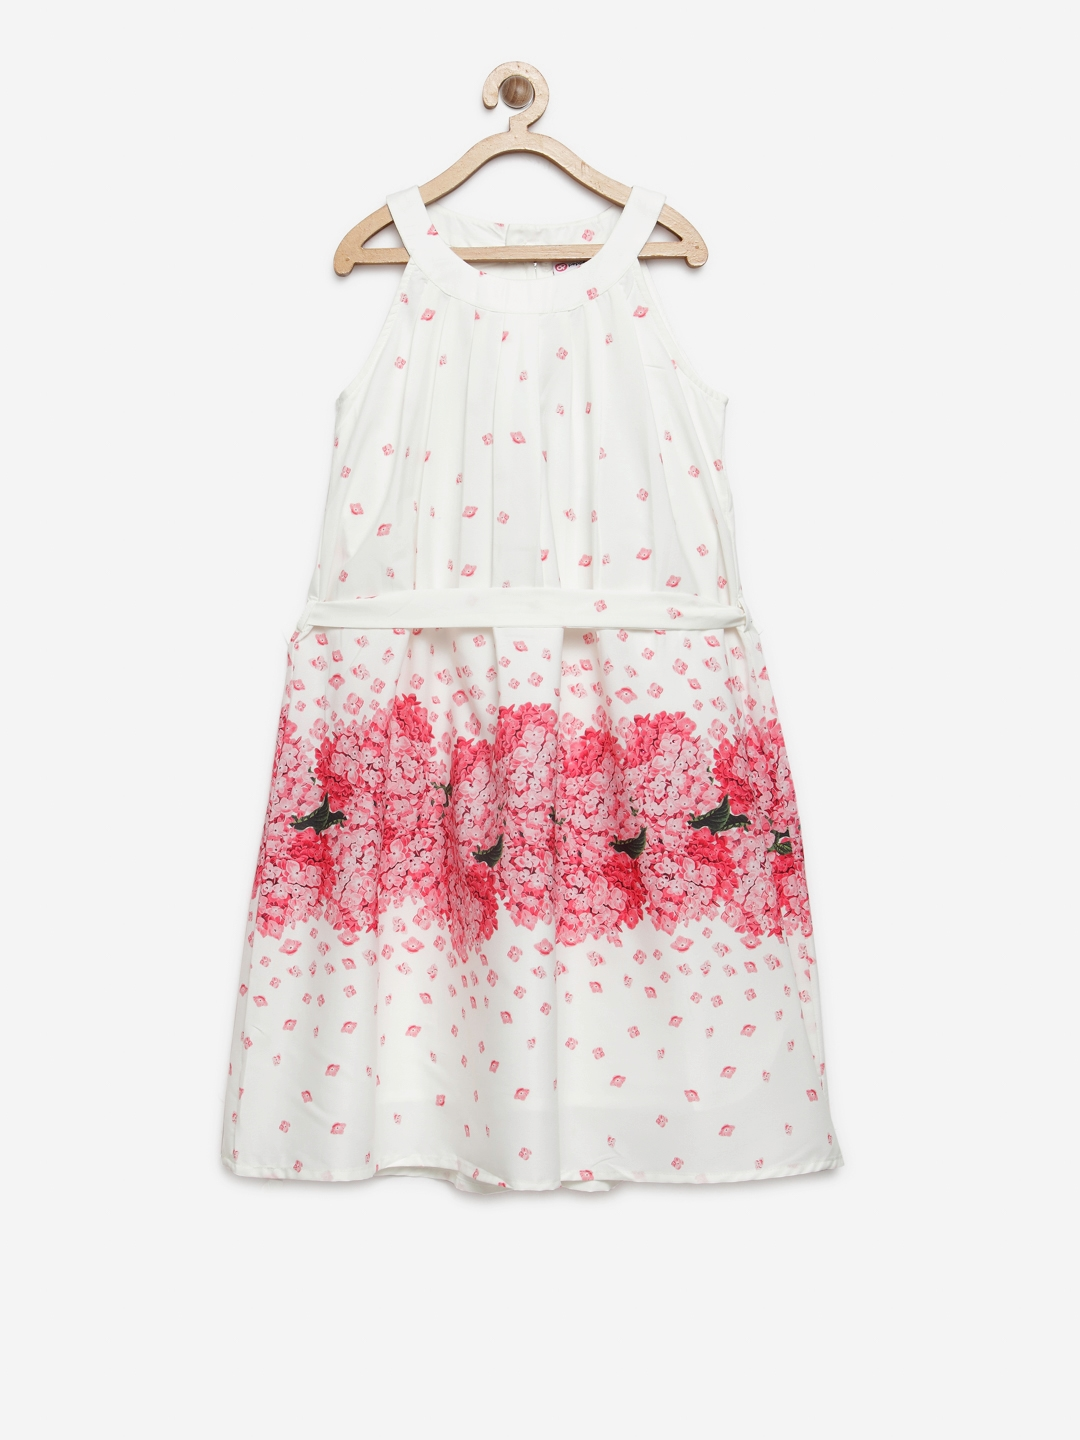 ea0f56be5 Buy Peppermint Girls White   Pink Floral Print A Line Dress ...